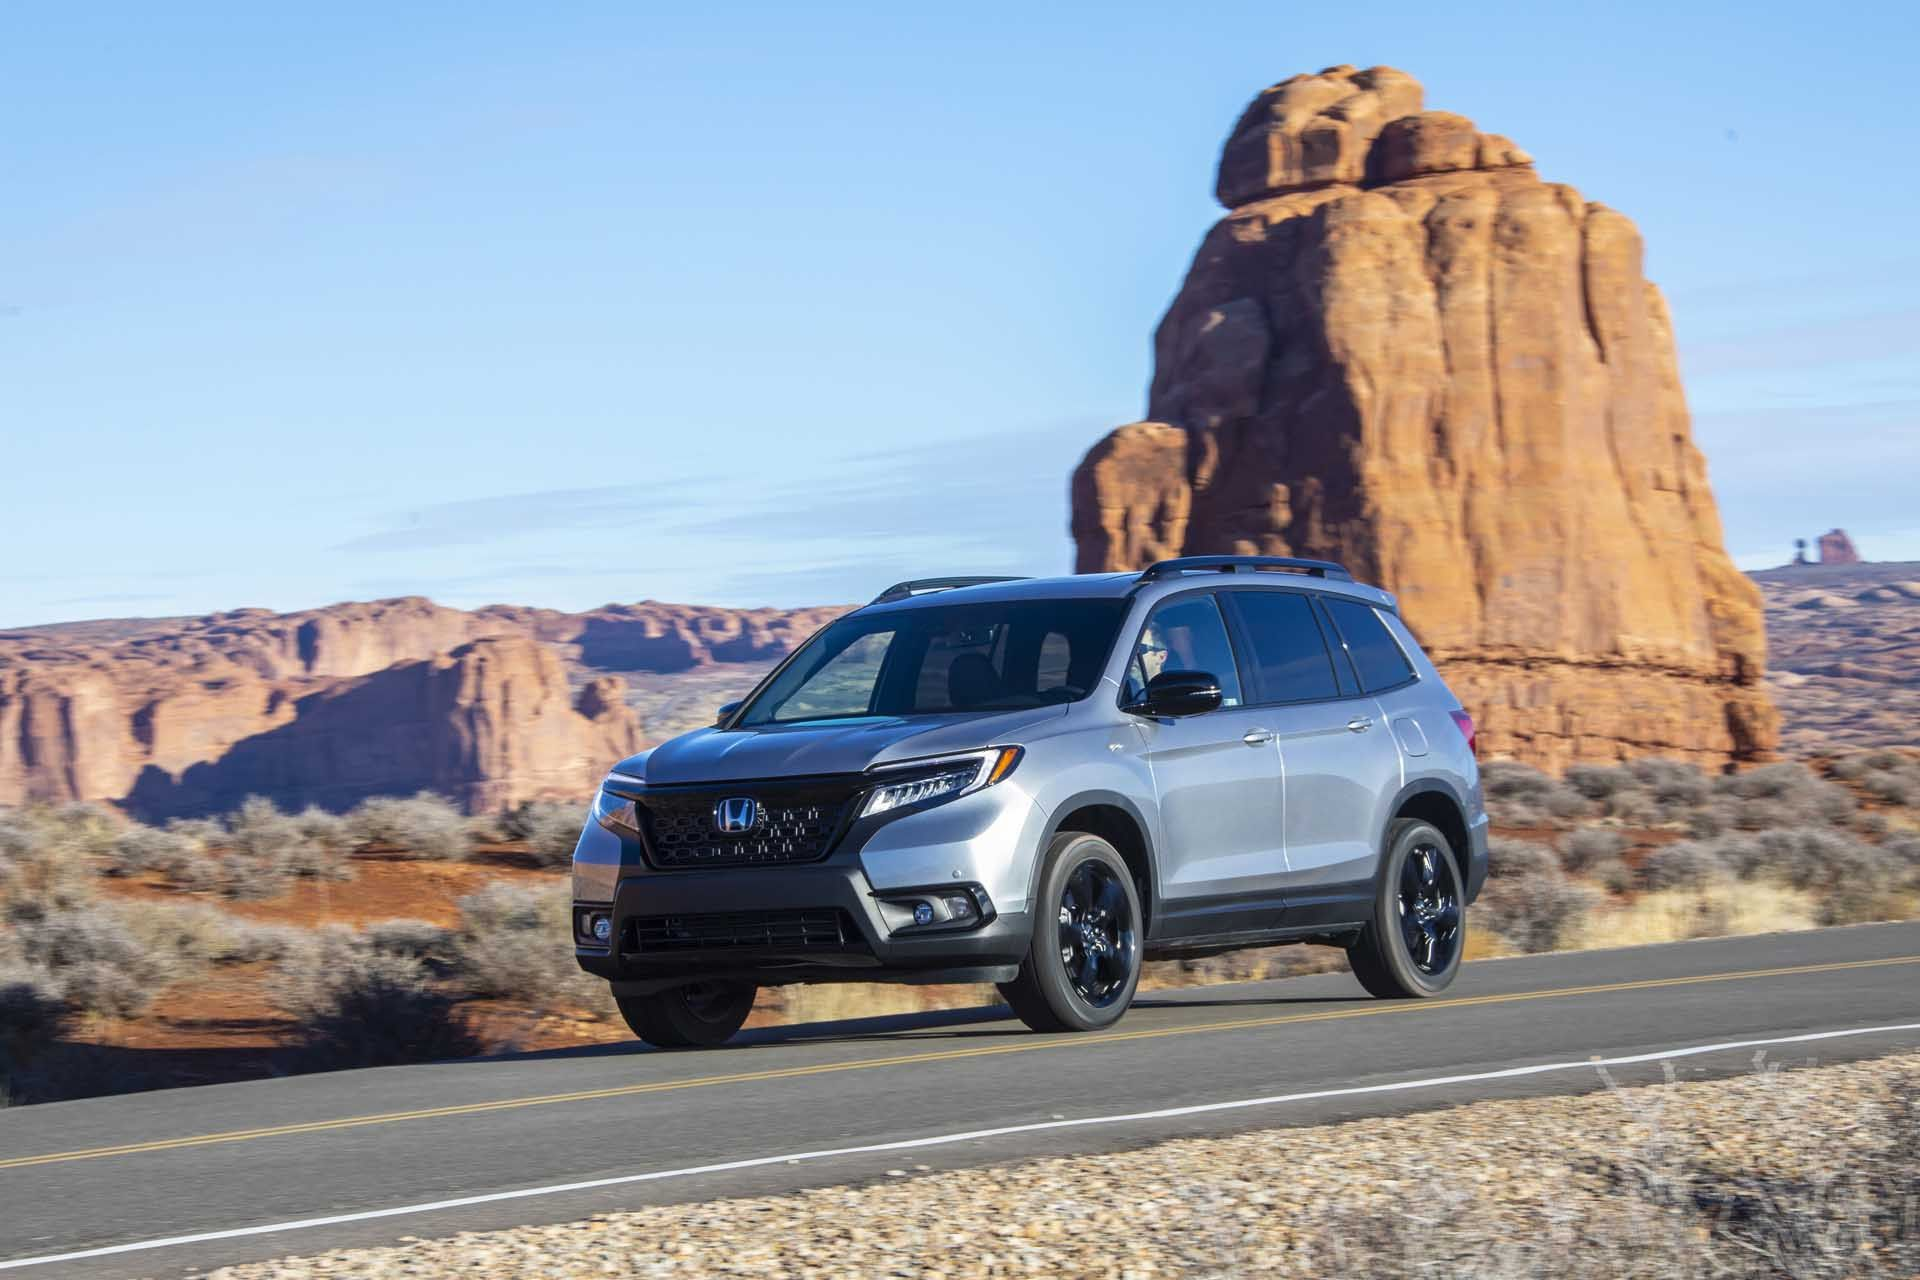 Honda Passport 2020 Release Date And Specs For Honda Passport 2020 Review Specs And Release Date Di 2020